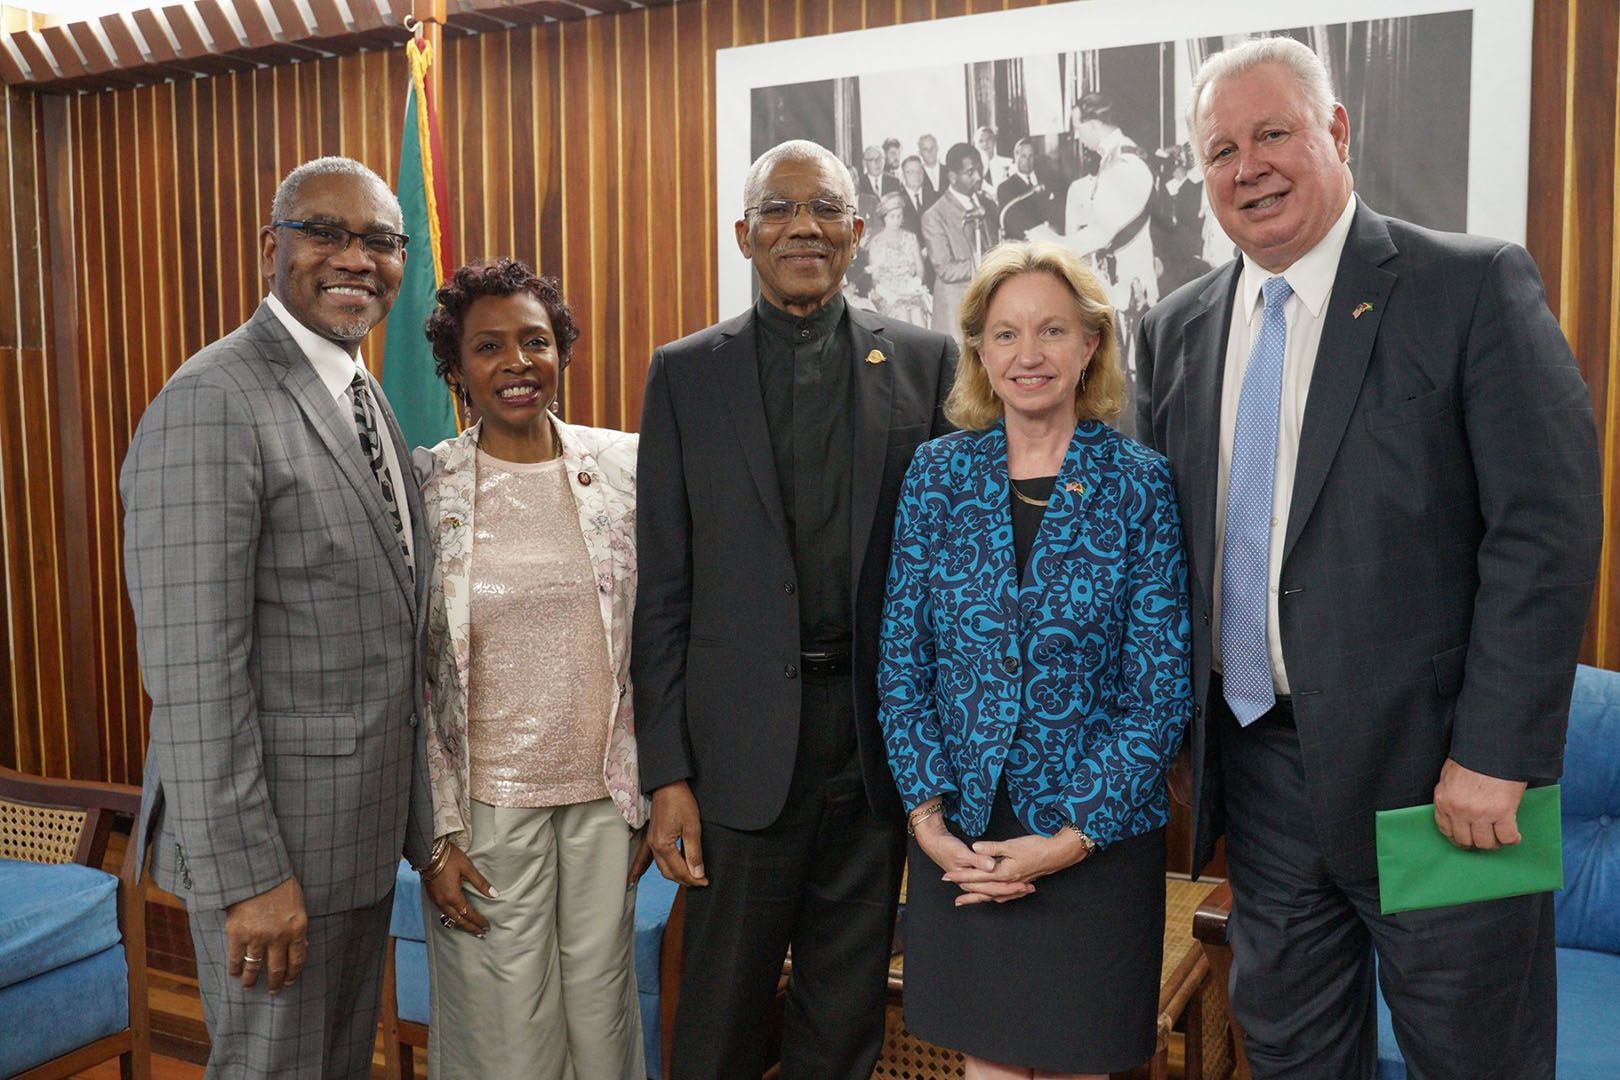 President David Granger [centre) with Congressman Albio Sires, Chairman of the Western Hemisphere, Civilian Security and Trade Subcommittee (right), US Ambassador to Guyana, Sarah-Ann Lynch (second from right), Congressman Gregory Meeks (left) and Congresswoman Yvette Clarke. (Ministry of the Presidency photo)